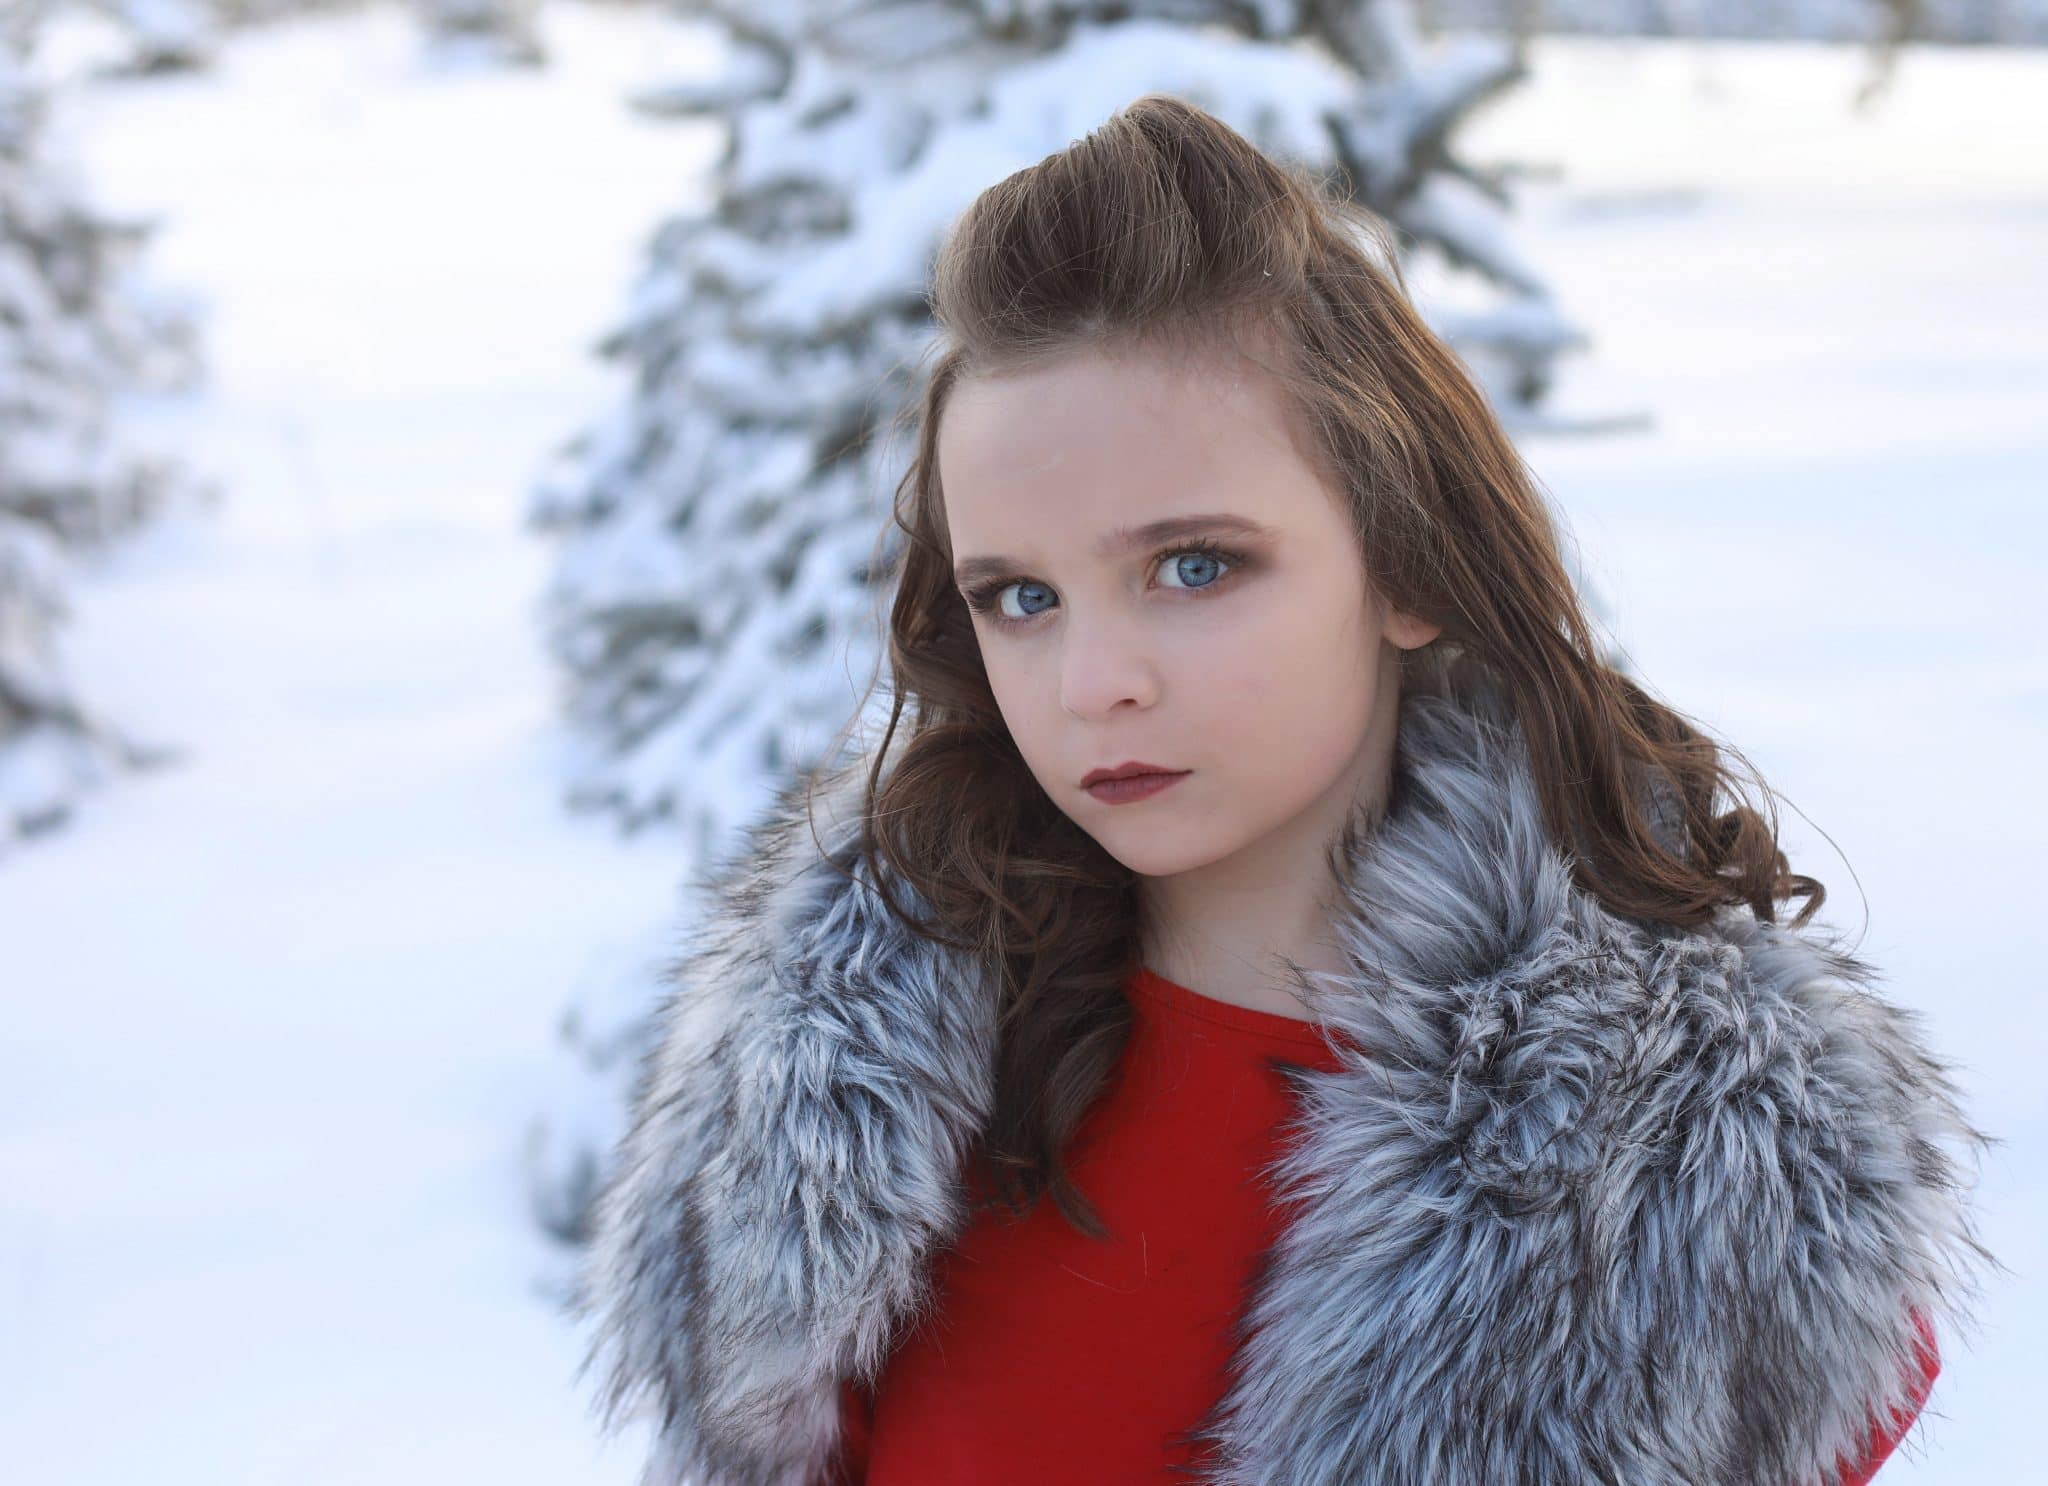 young girl, small smirk, red dress, tree farm covered in white snow, grey faux fur on shoulders